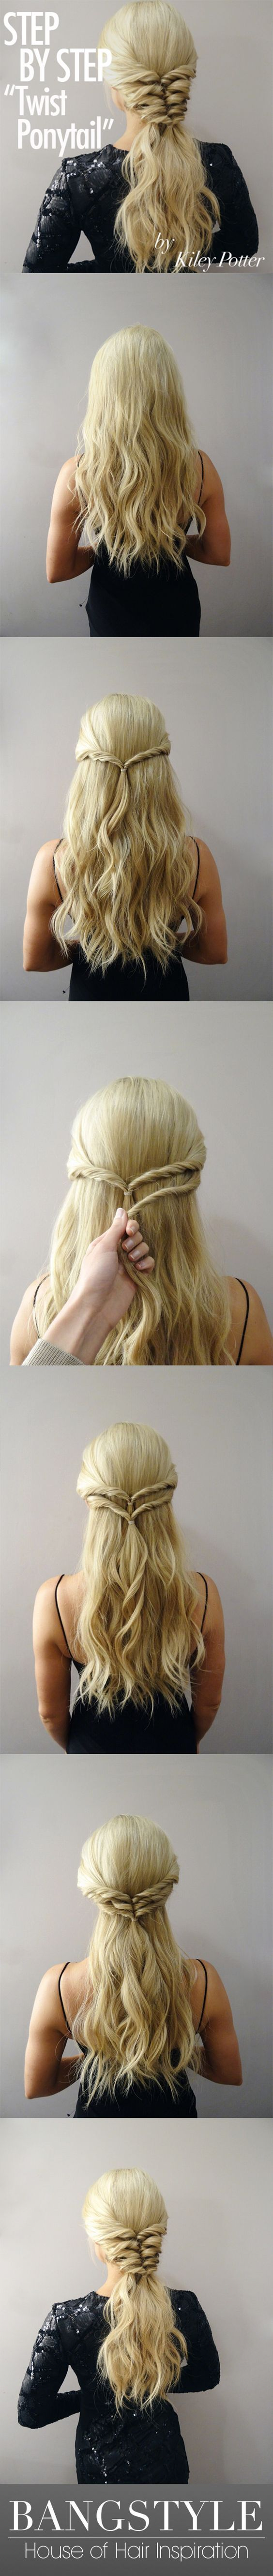 182 best hair knowledge images on Pinterest